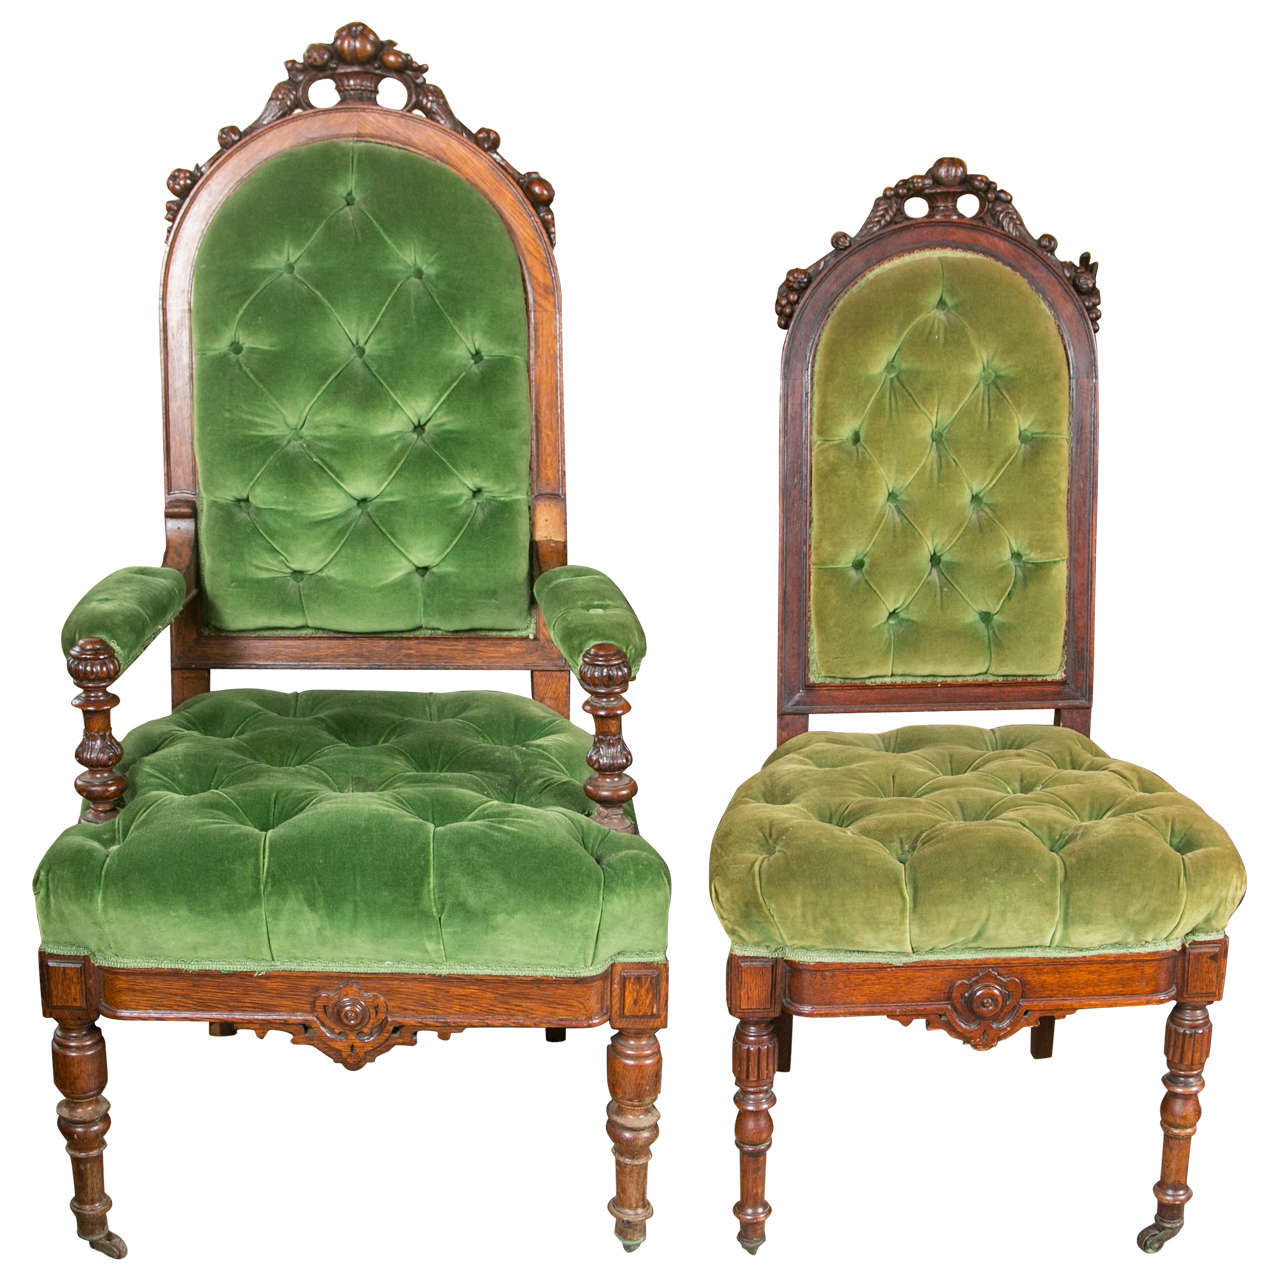 Victorian Dining Chairs For Sale : X from pixelrz.com size 1280 x 1280 jpeg 147kB